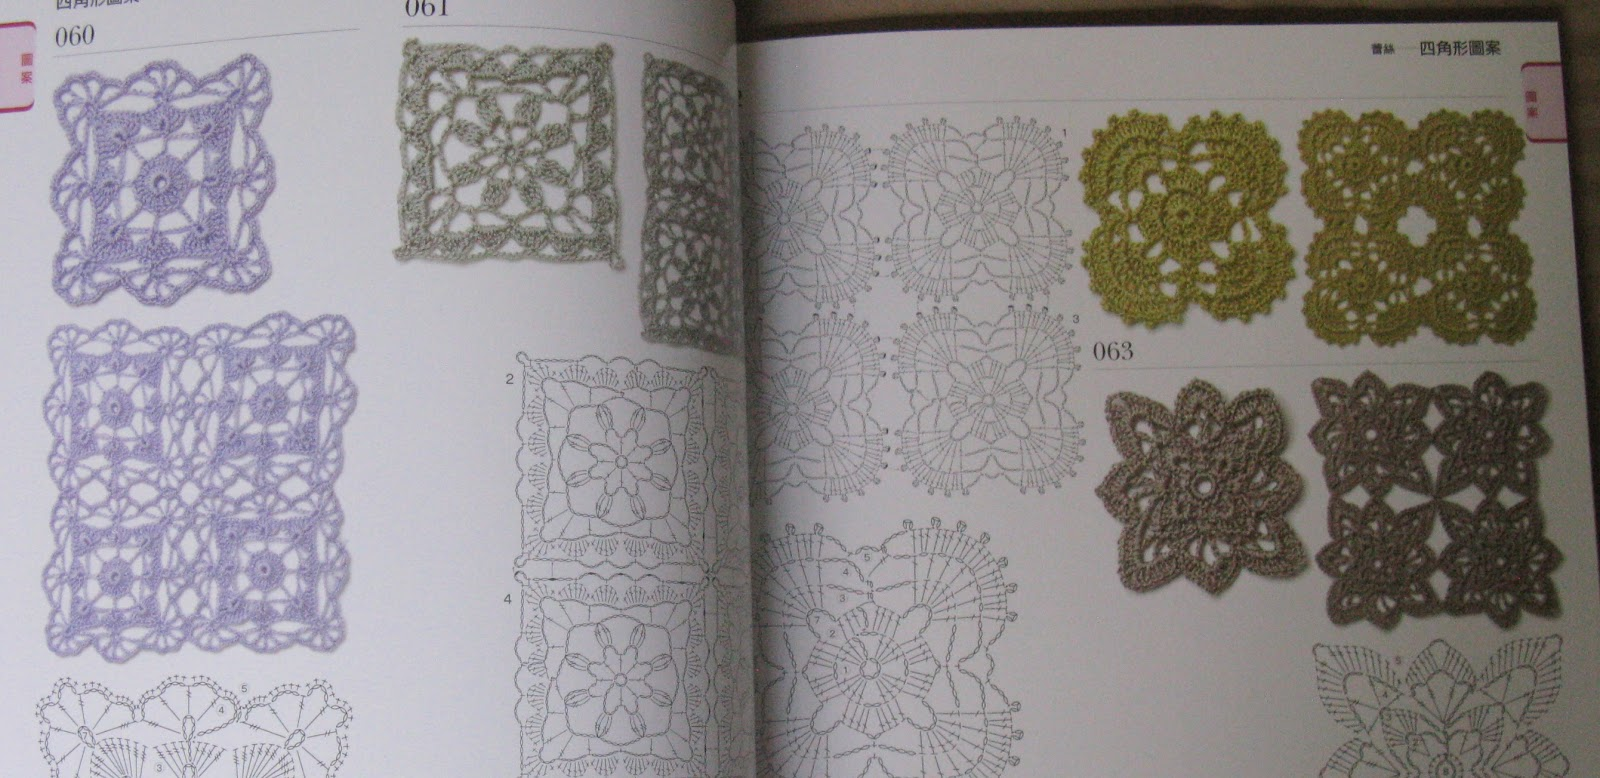 Crochet Stitches Japanese : ... .com: Japanese Crochet Book - Motifs and Edging 300 Patterns